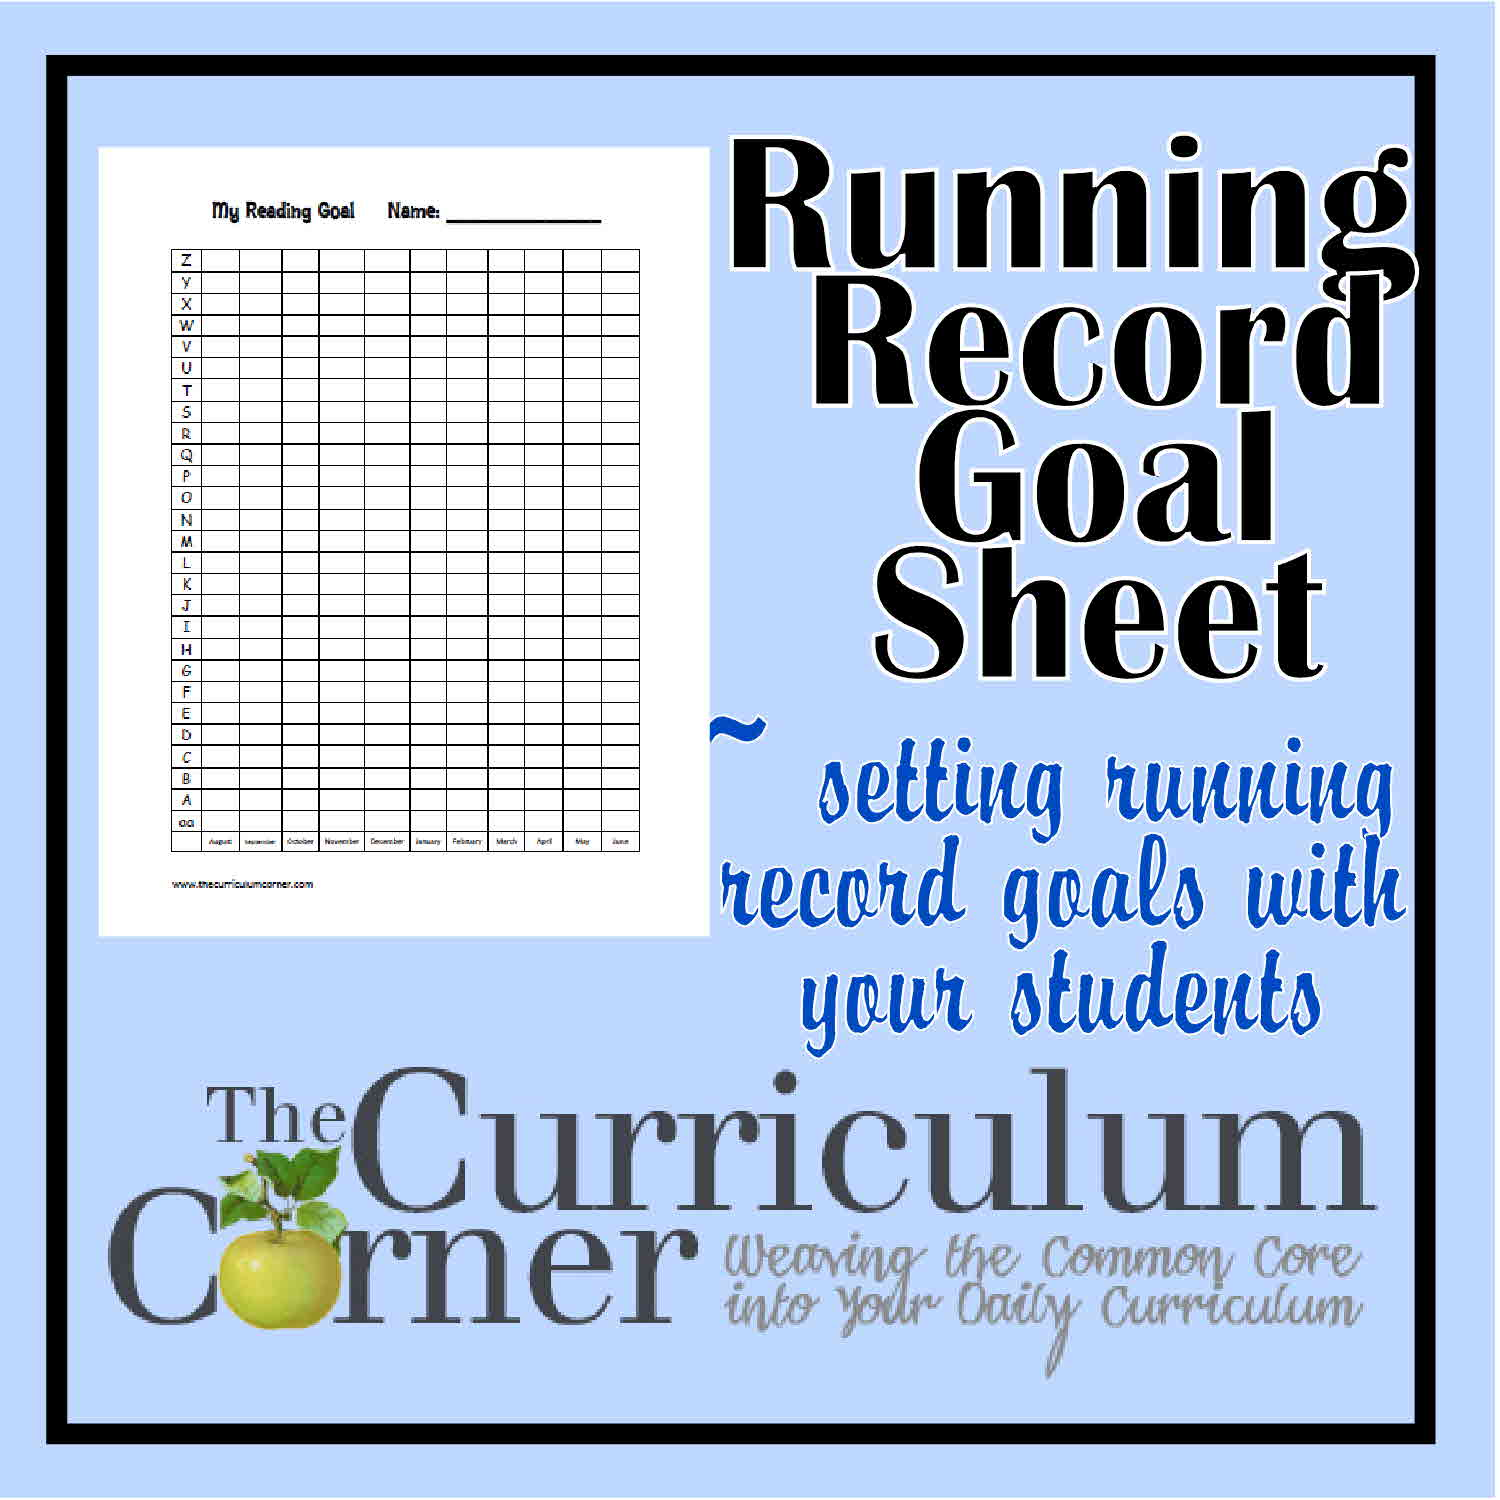 Running Record Goal Setting Sheet